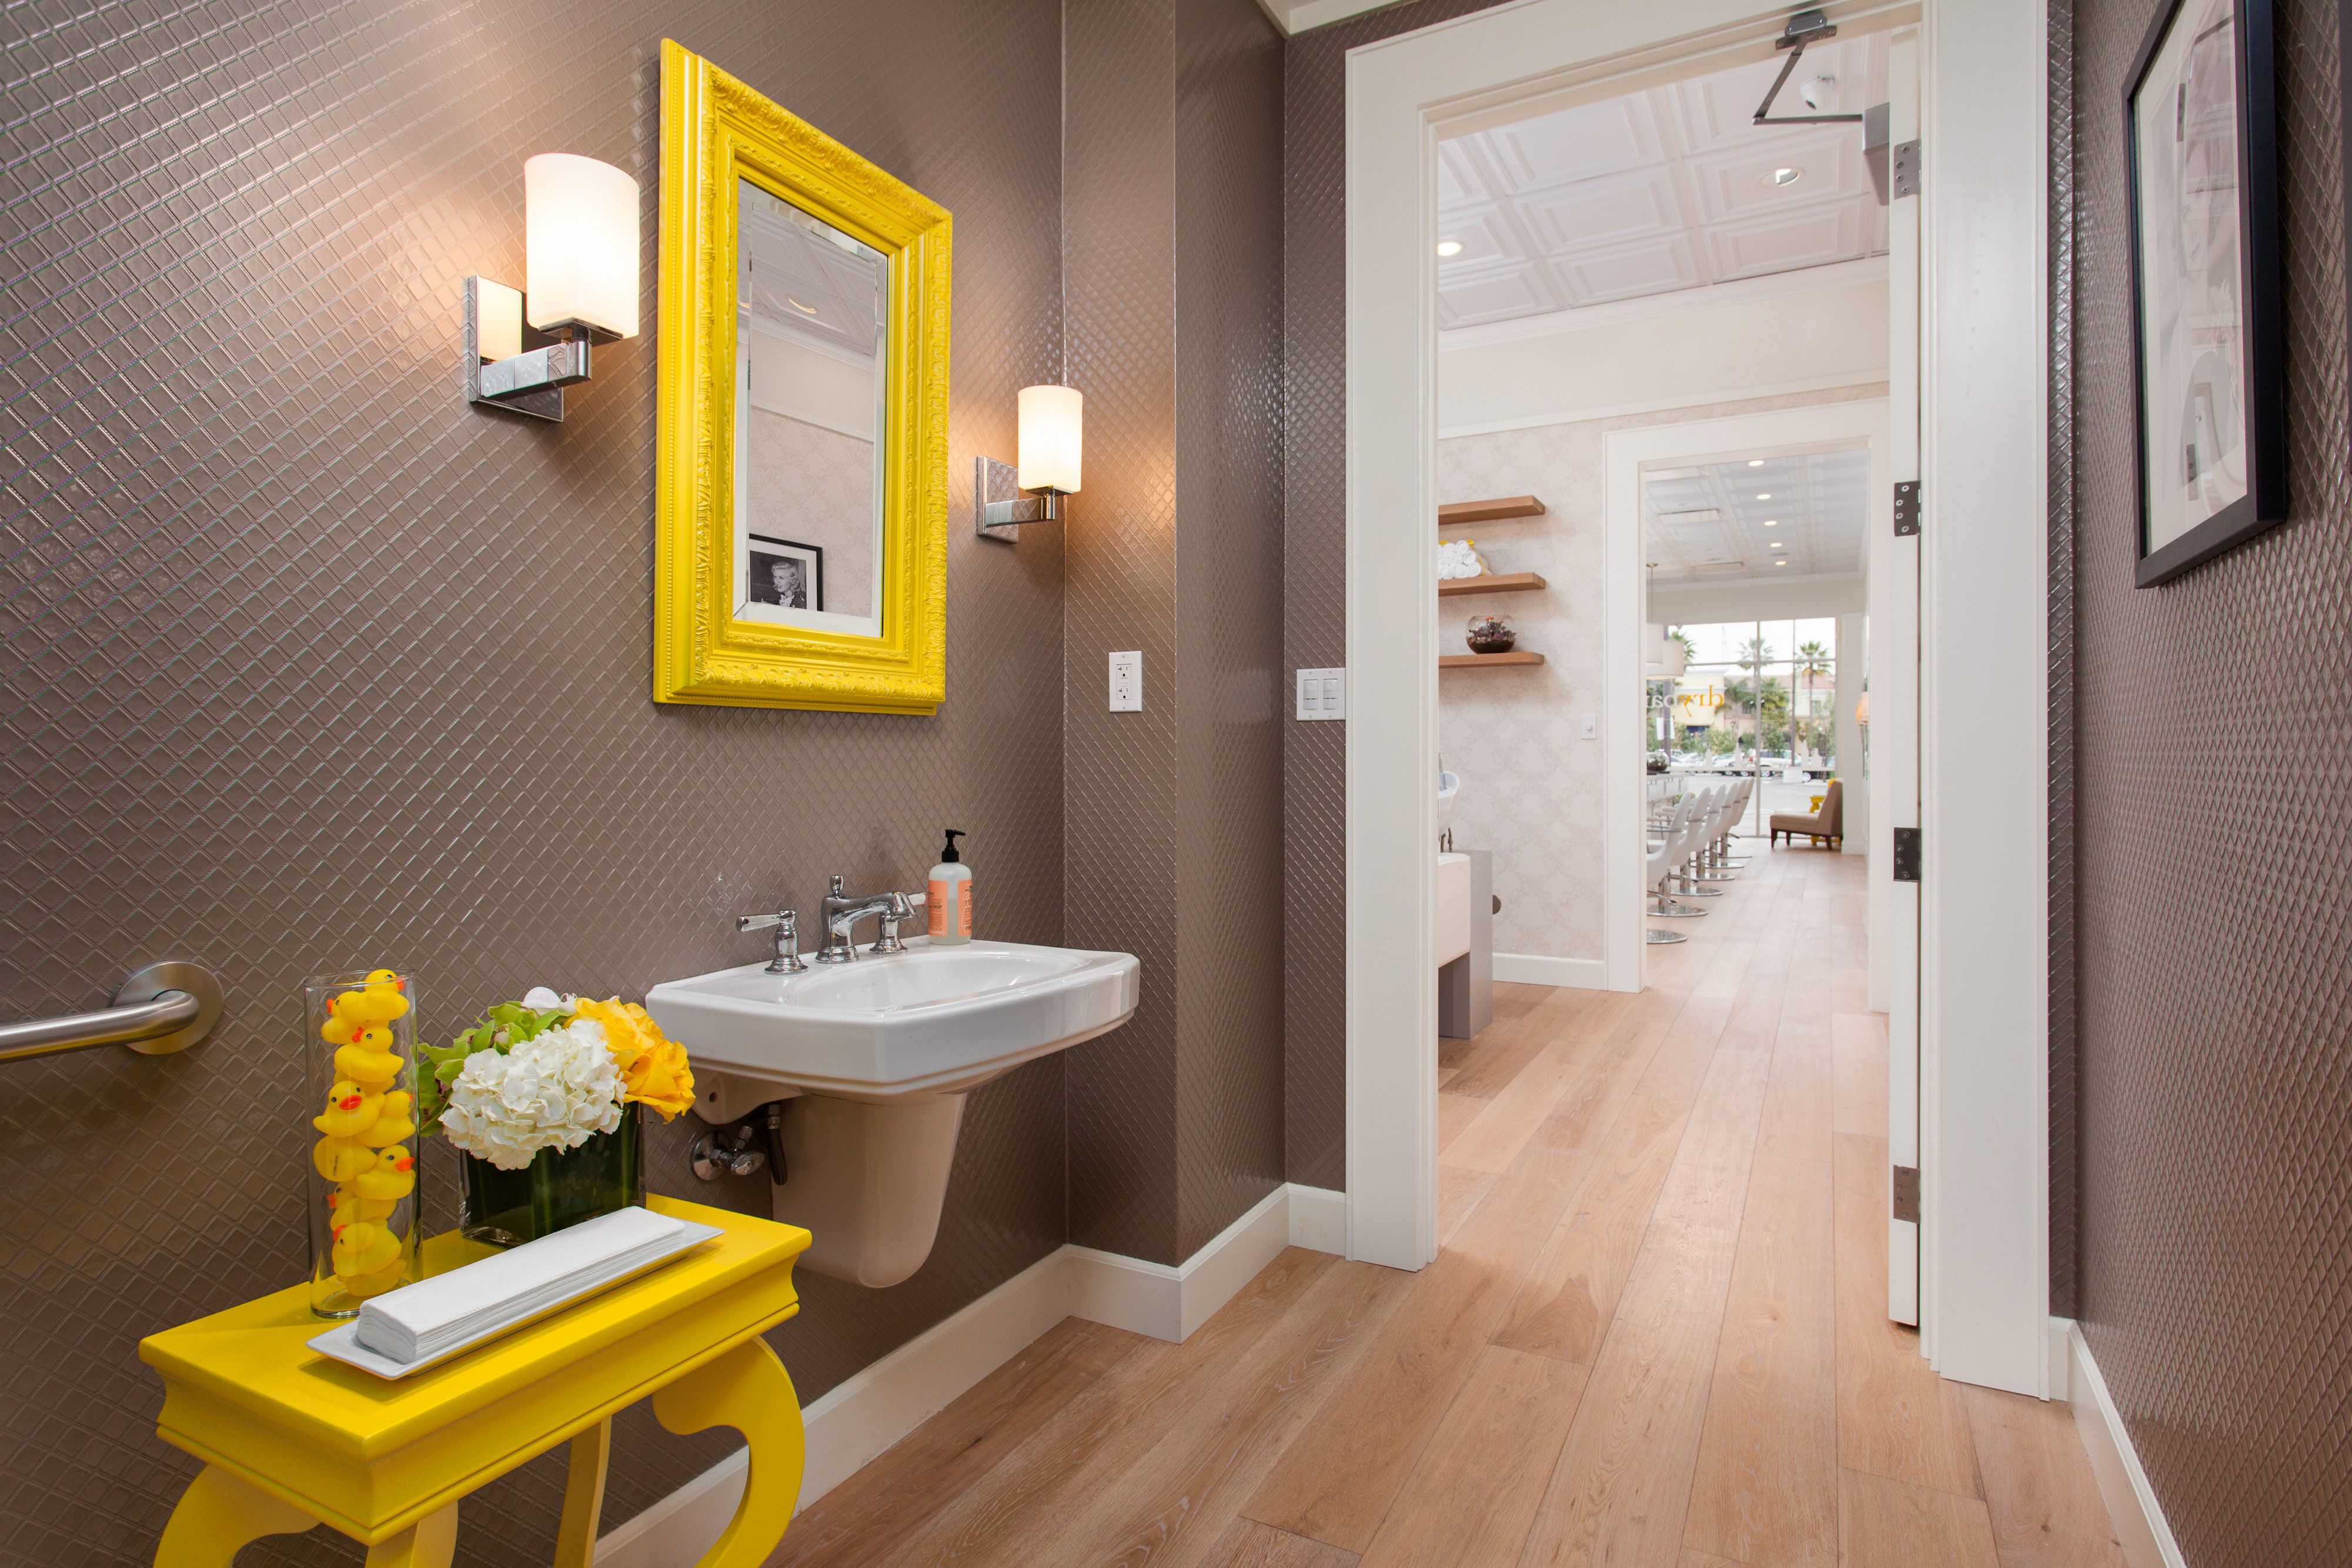 grey walls and yellow accents  bathroom inspiration decor